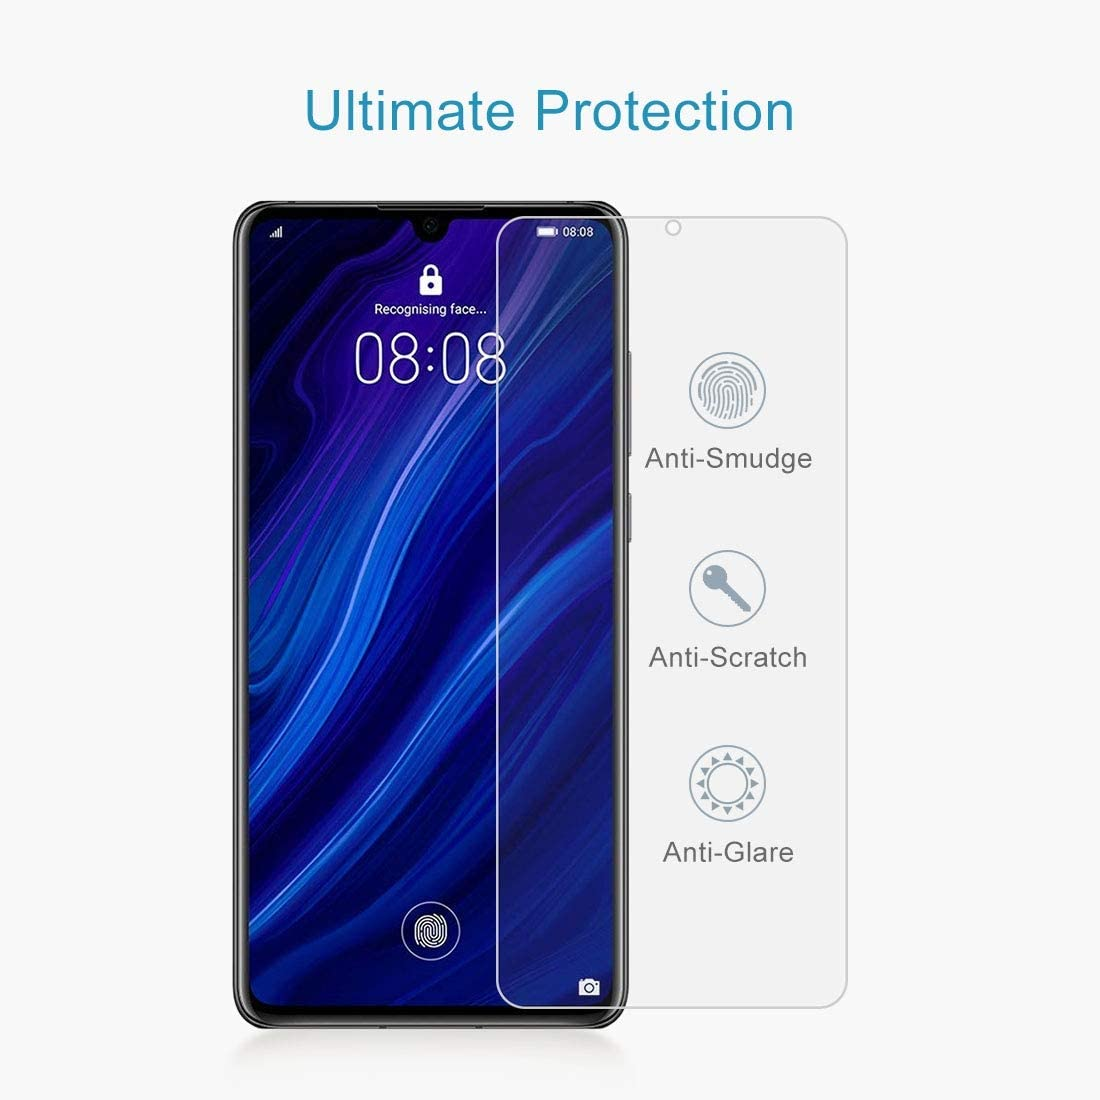 ZHANGYUNSHENG 100 PCS 0.26mm 9H 2.5D Tempered Glass Film for Huawei P30 zys